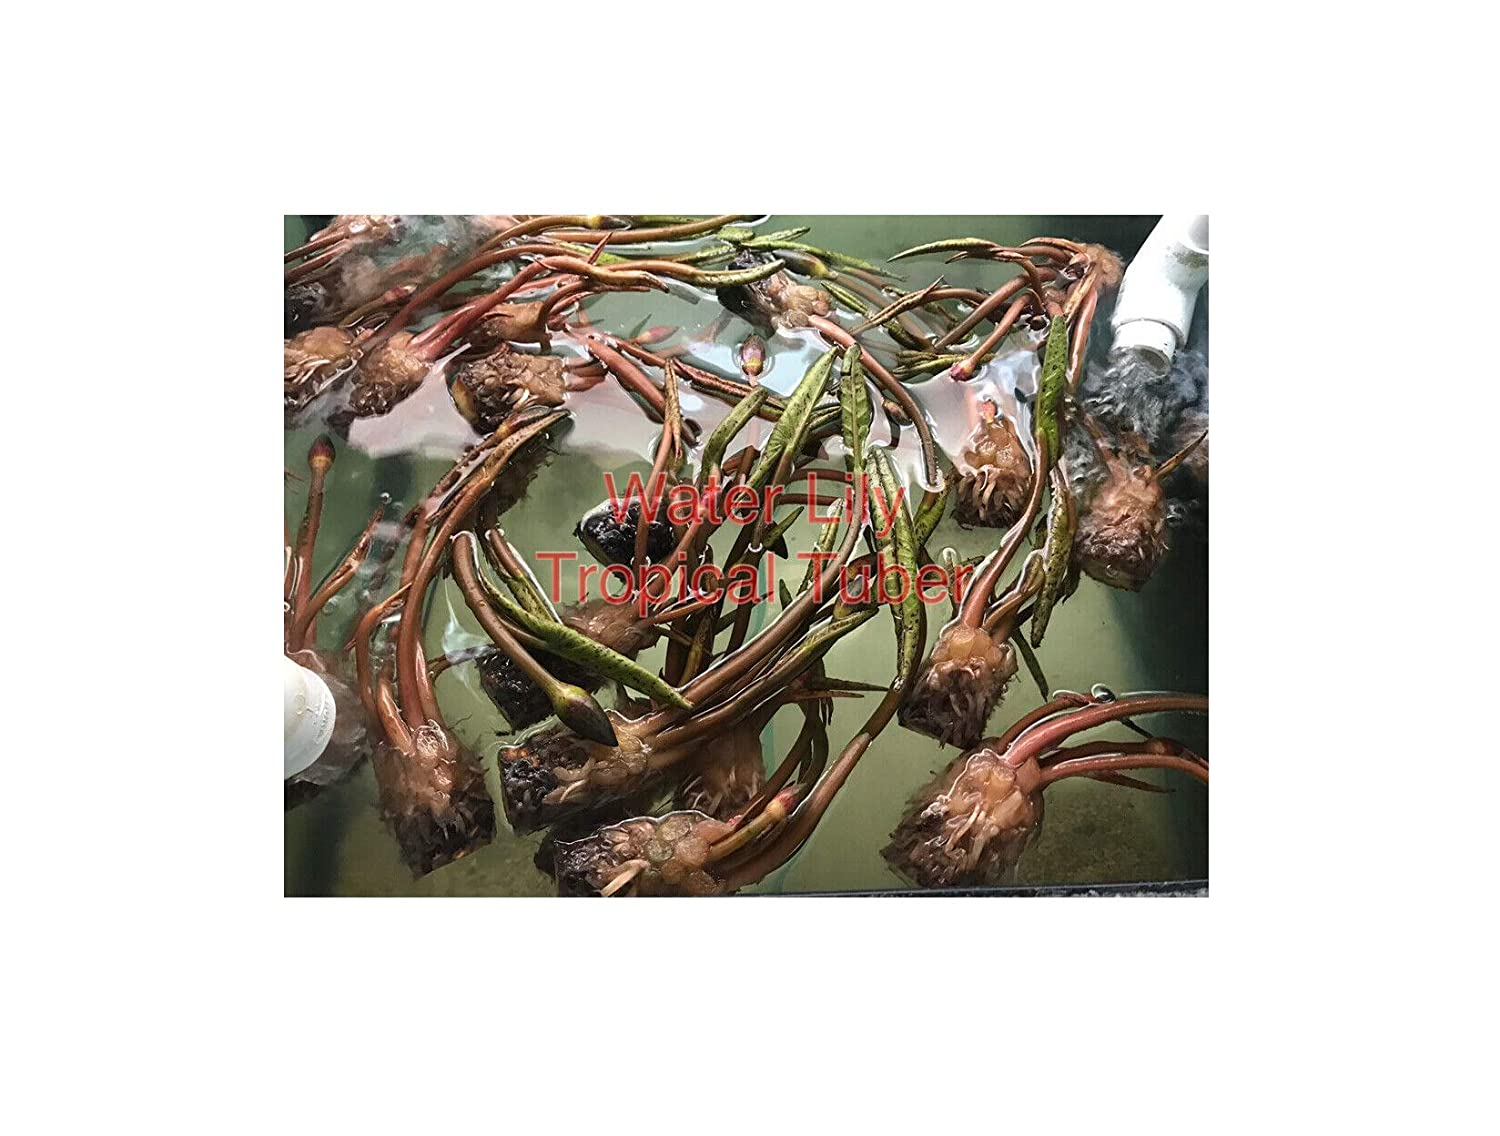 New Nymphaea ply Pink Tropical Water Lily Tuber Rhizome Pond Plant a068 1 pcs